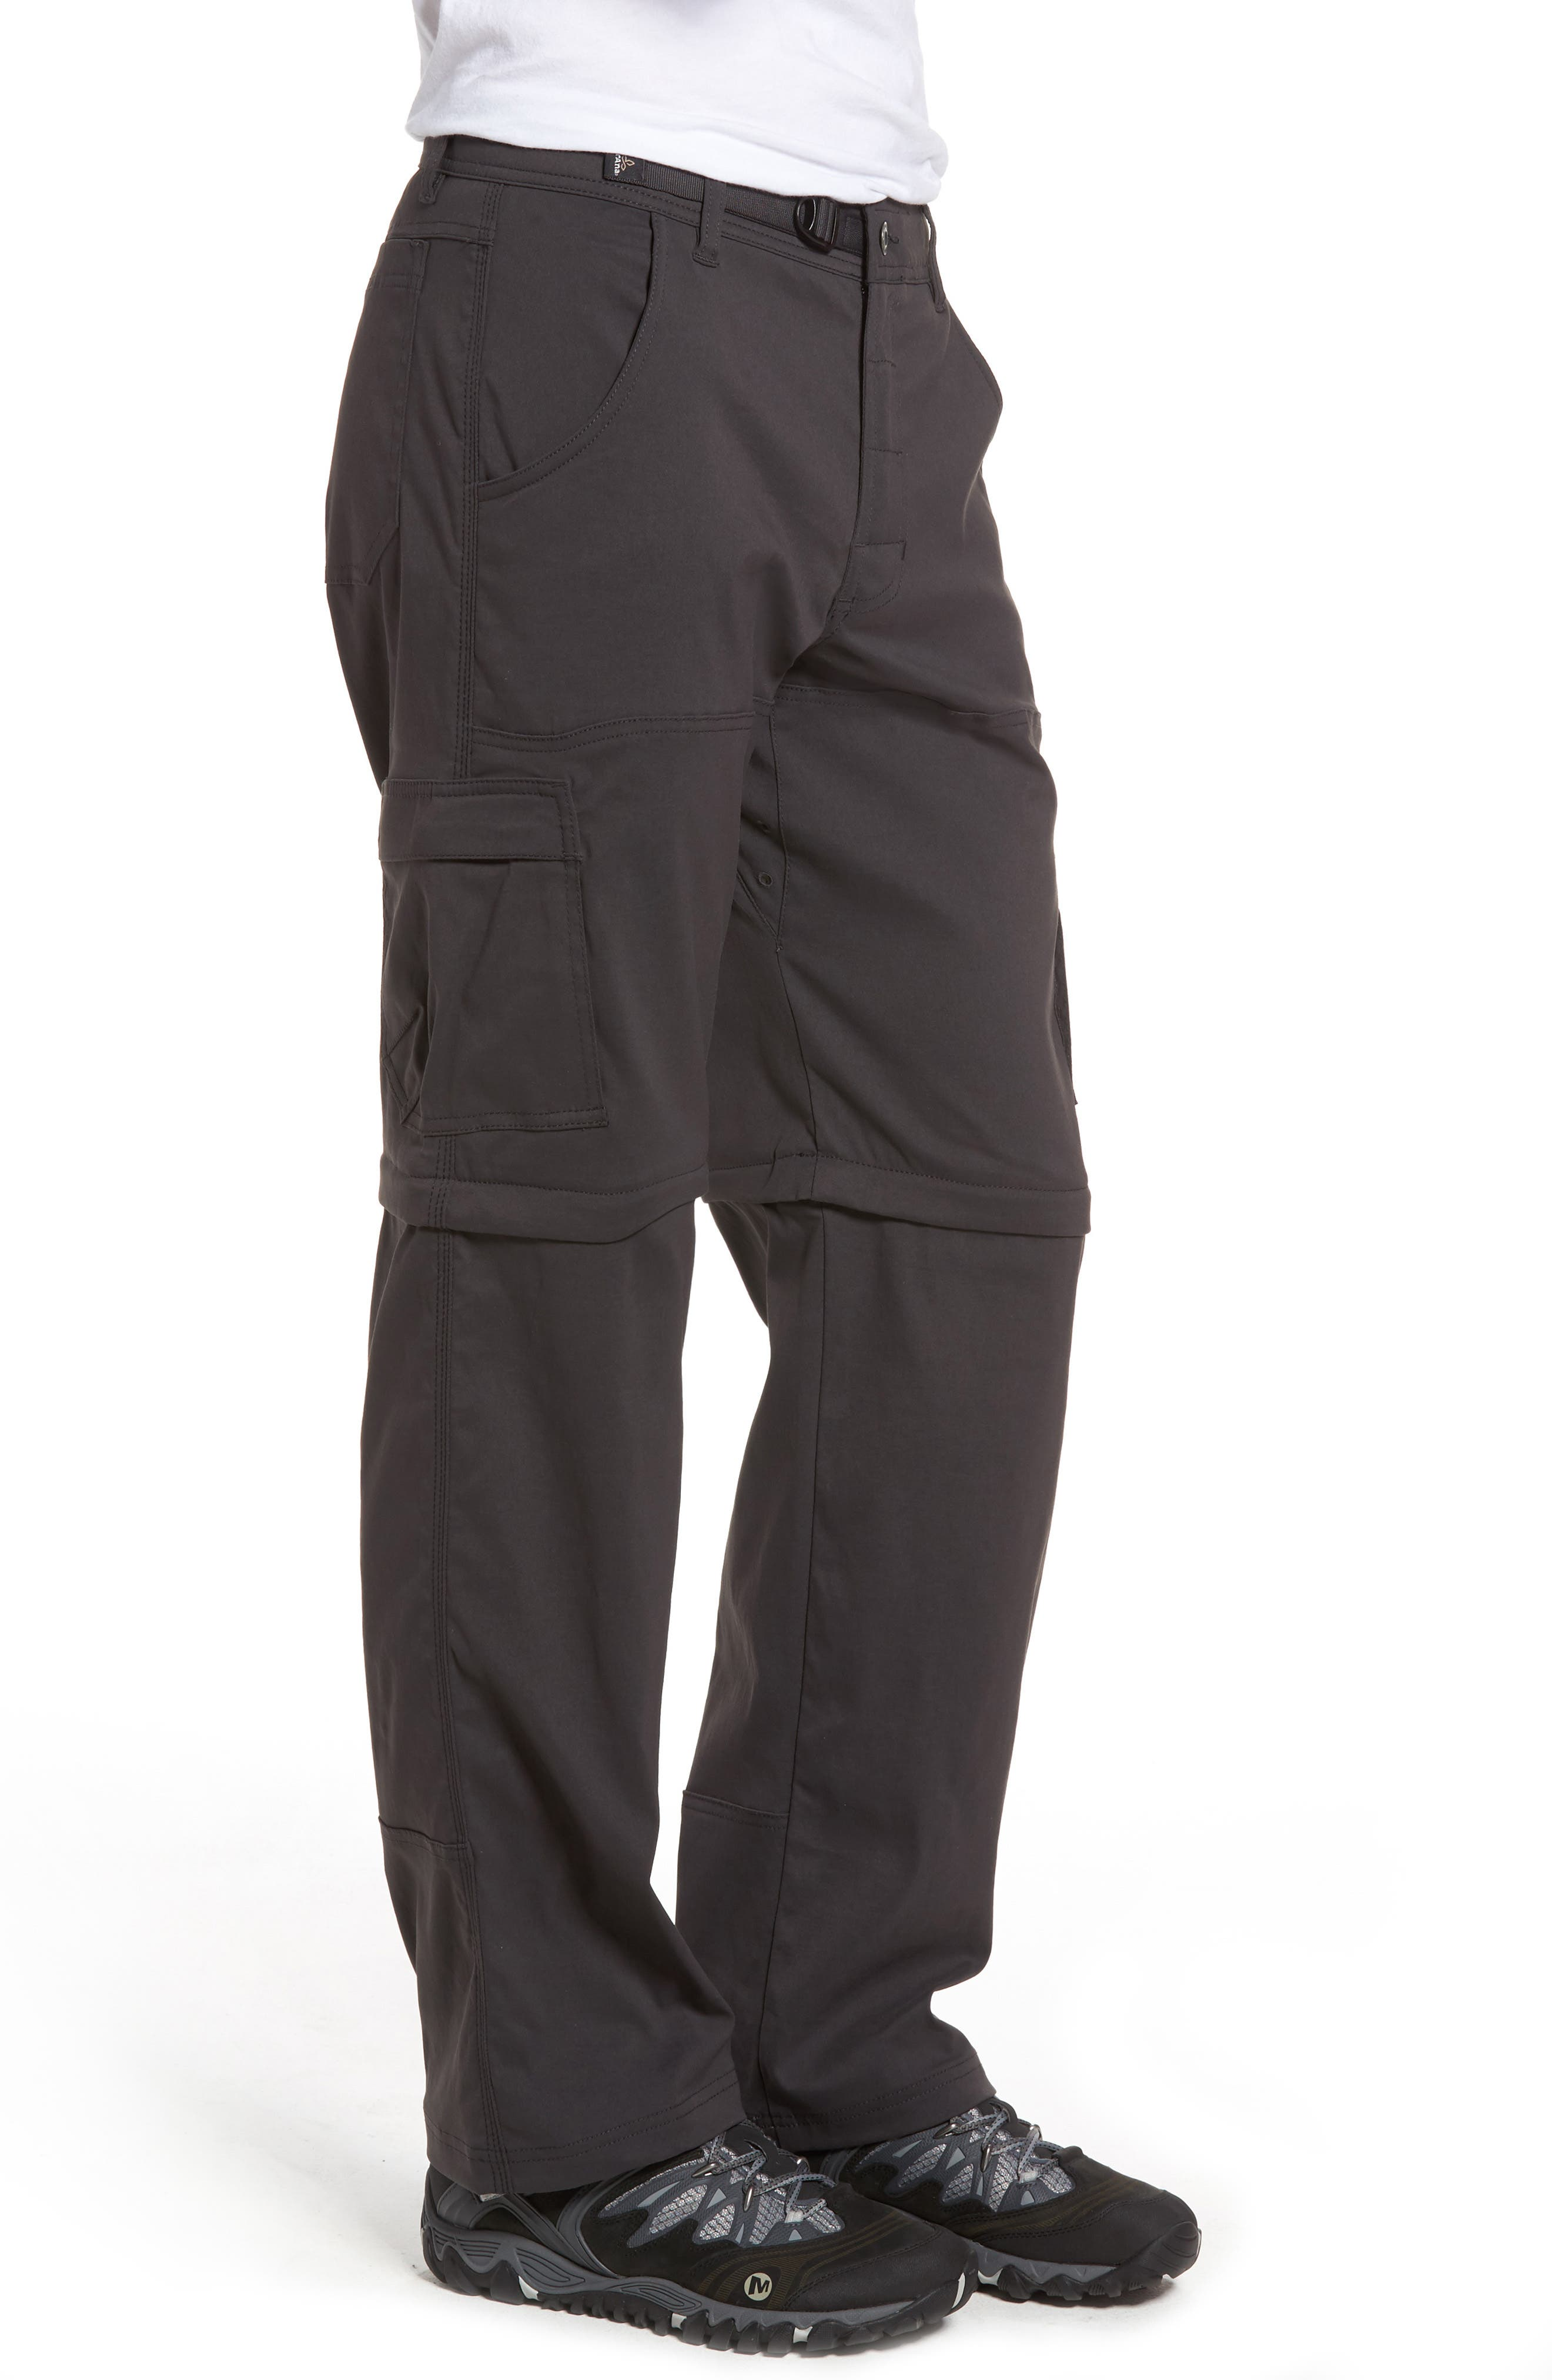 Zion Stretch Convertible Cargo Hiking Pants,                             Alternate thumbnail 3, color,                             010